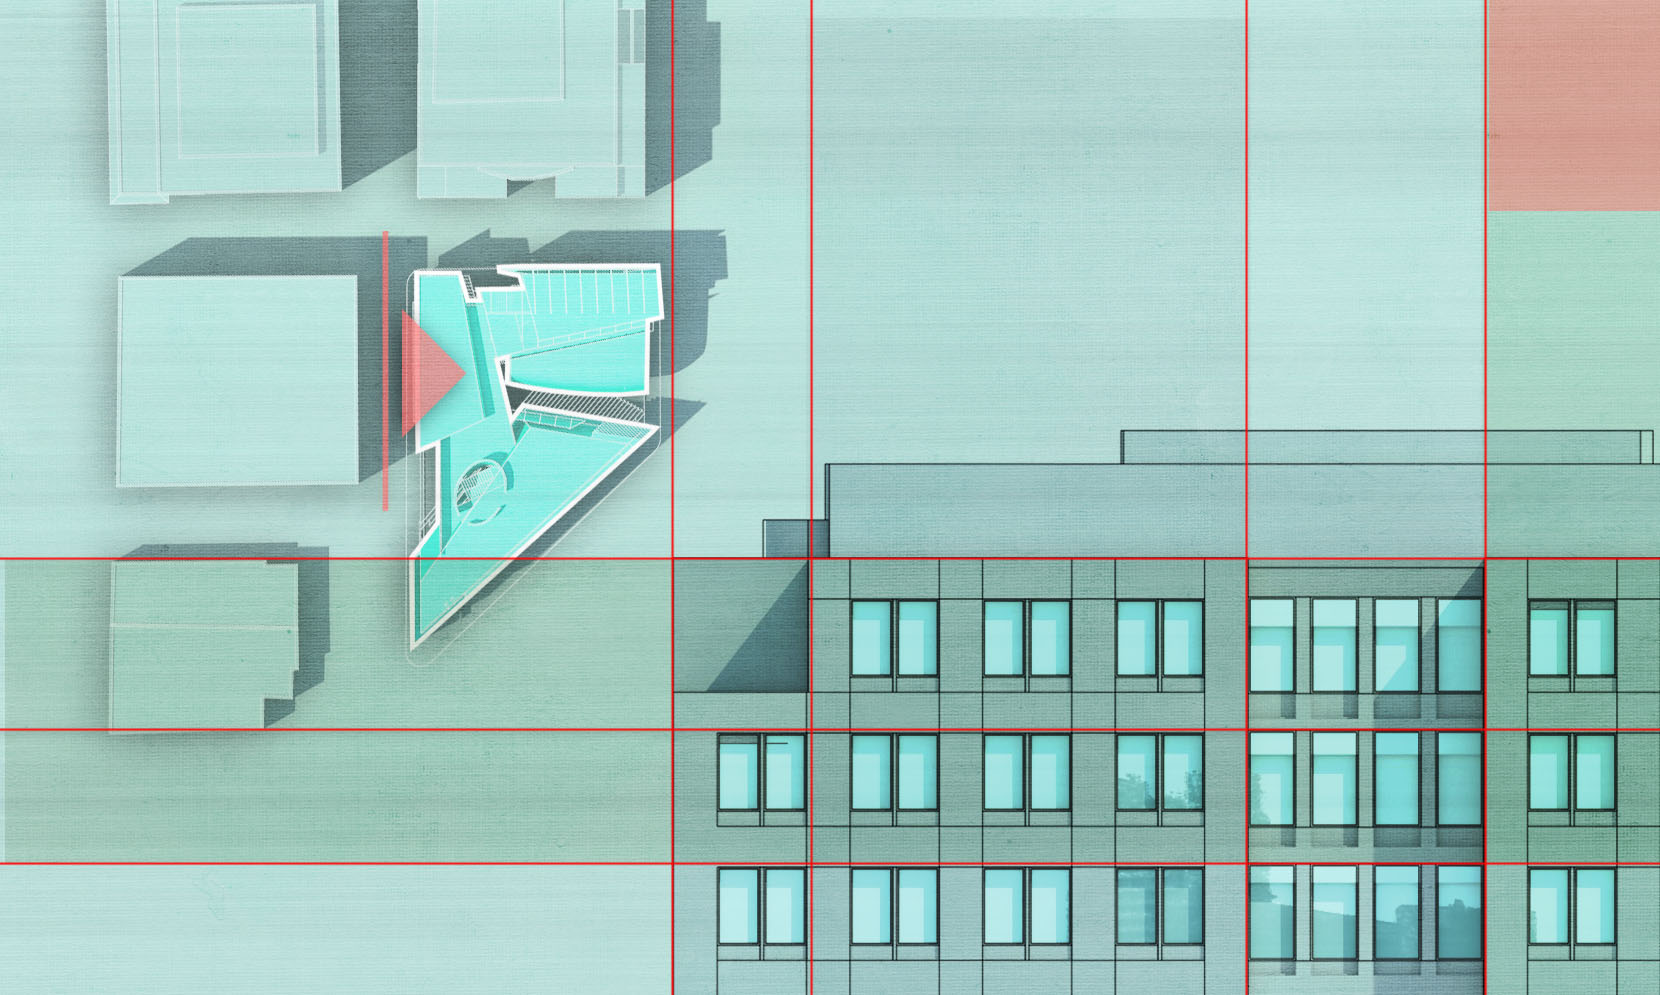 Boston Greenway Museum: Building Diagrams | Visualizing Architecture